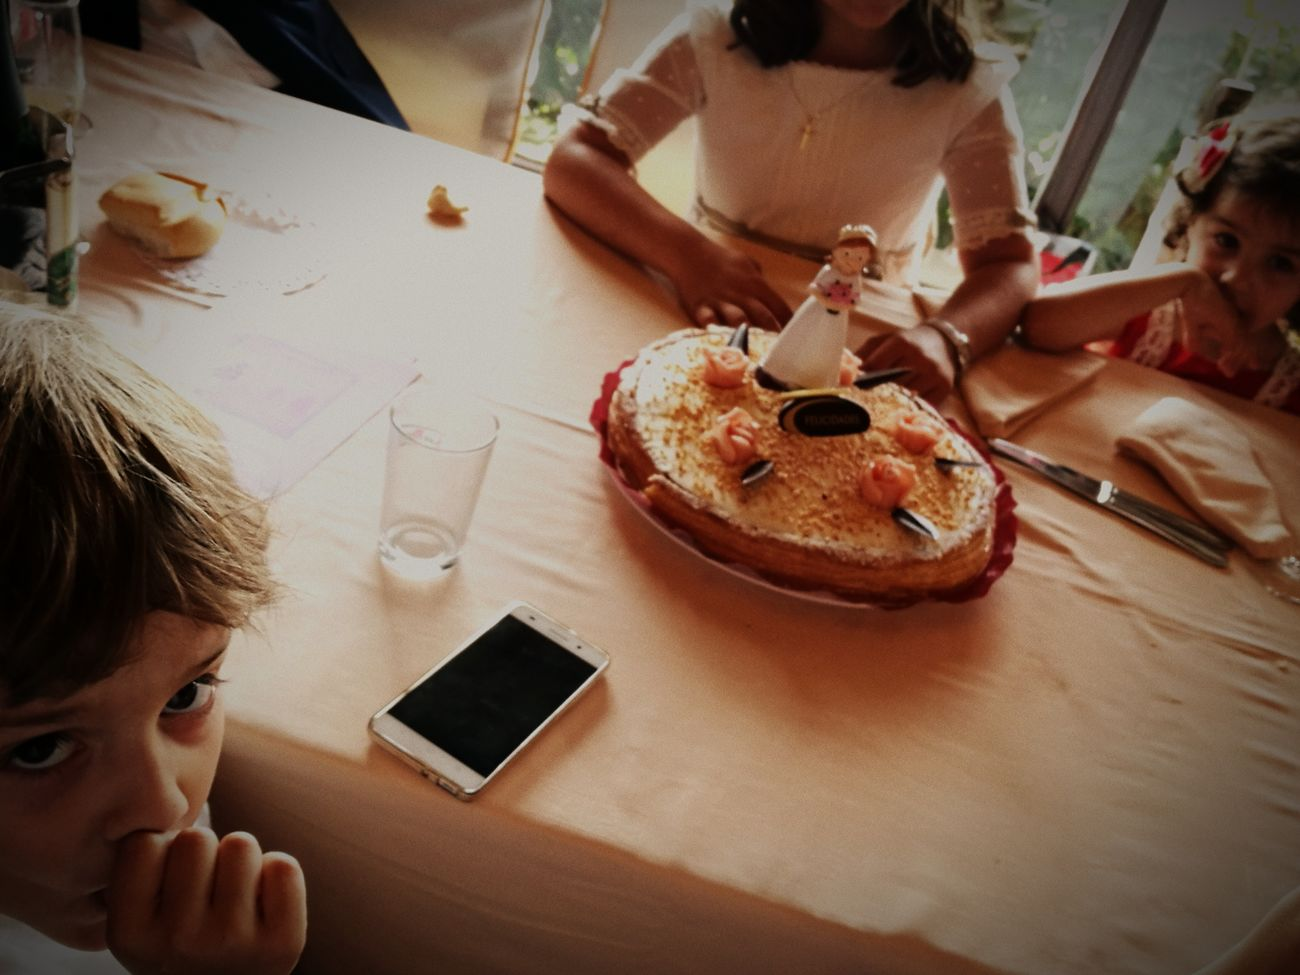 Comunion Cakelovers Cake♥ Family❤ Friendship Table Family Time FAMILIA♥ Sweet Food Domestic Life Food And Drink Real People Cafe Lifestyles First Eyeem Photo